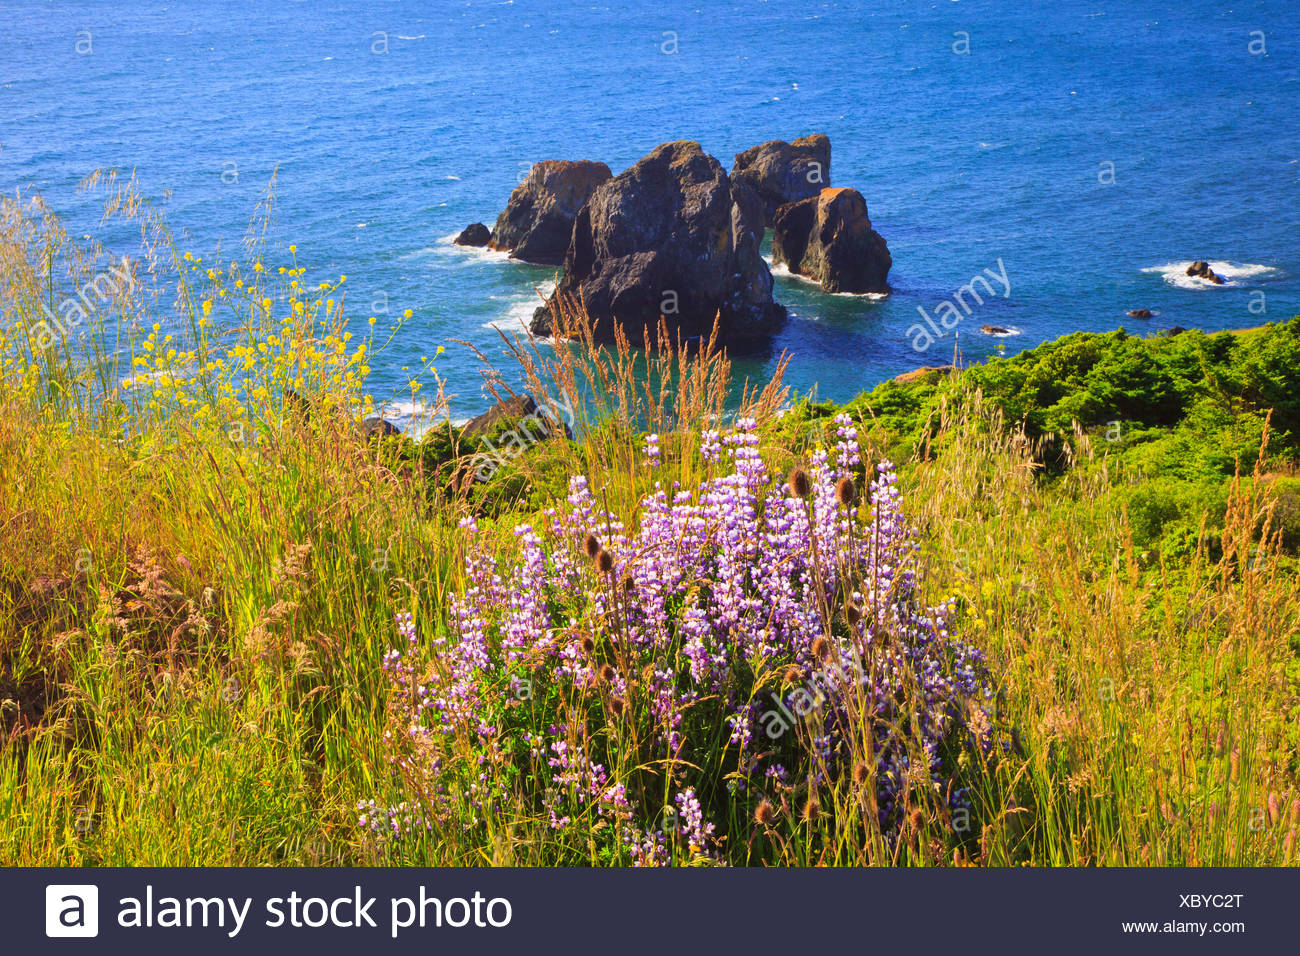 Wildflowers And Afternoon Light Add Beauty To Rock Formations At Humbug Mountain State Park; Oregon, United States of America - Stock Image